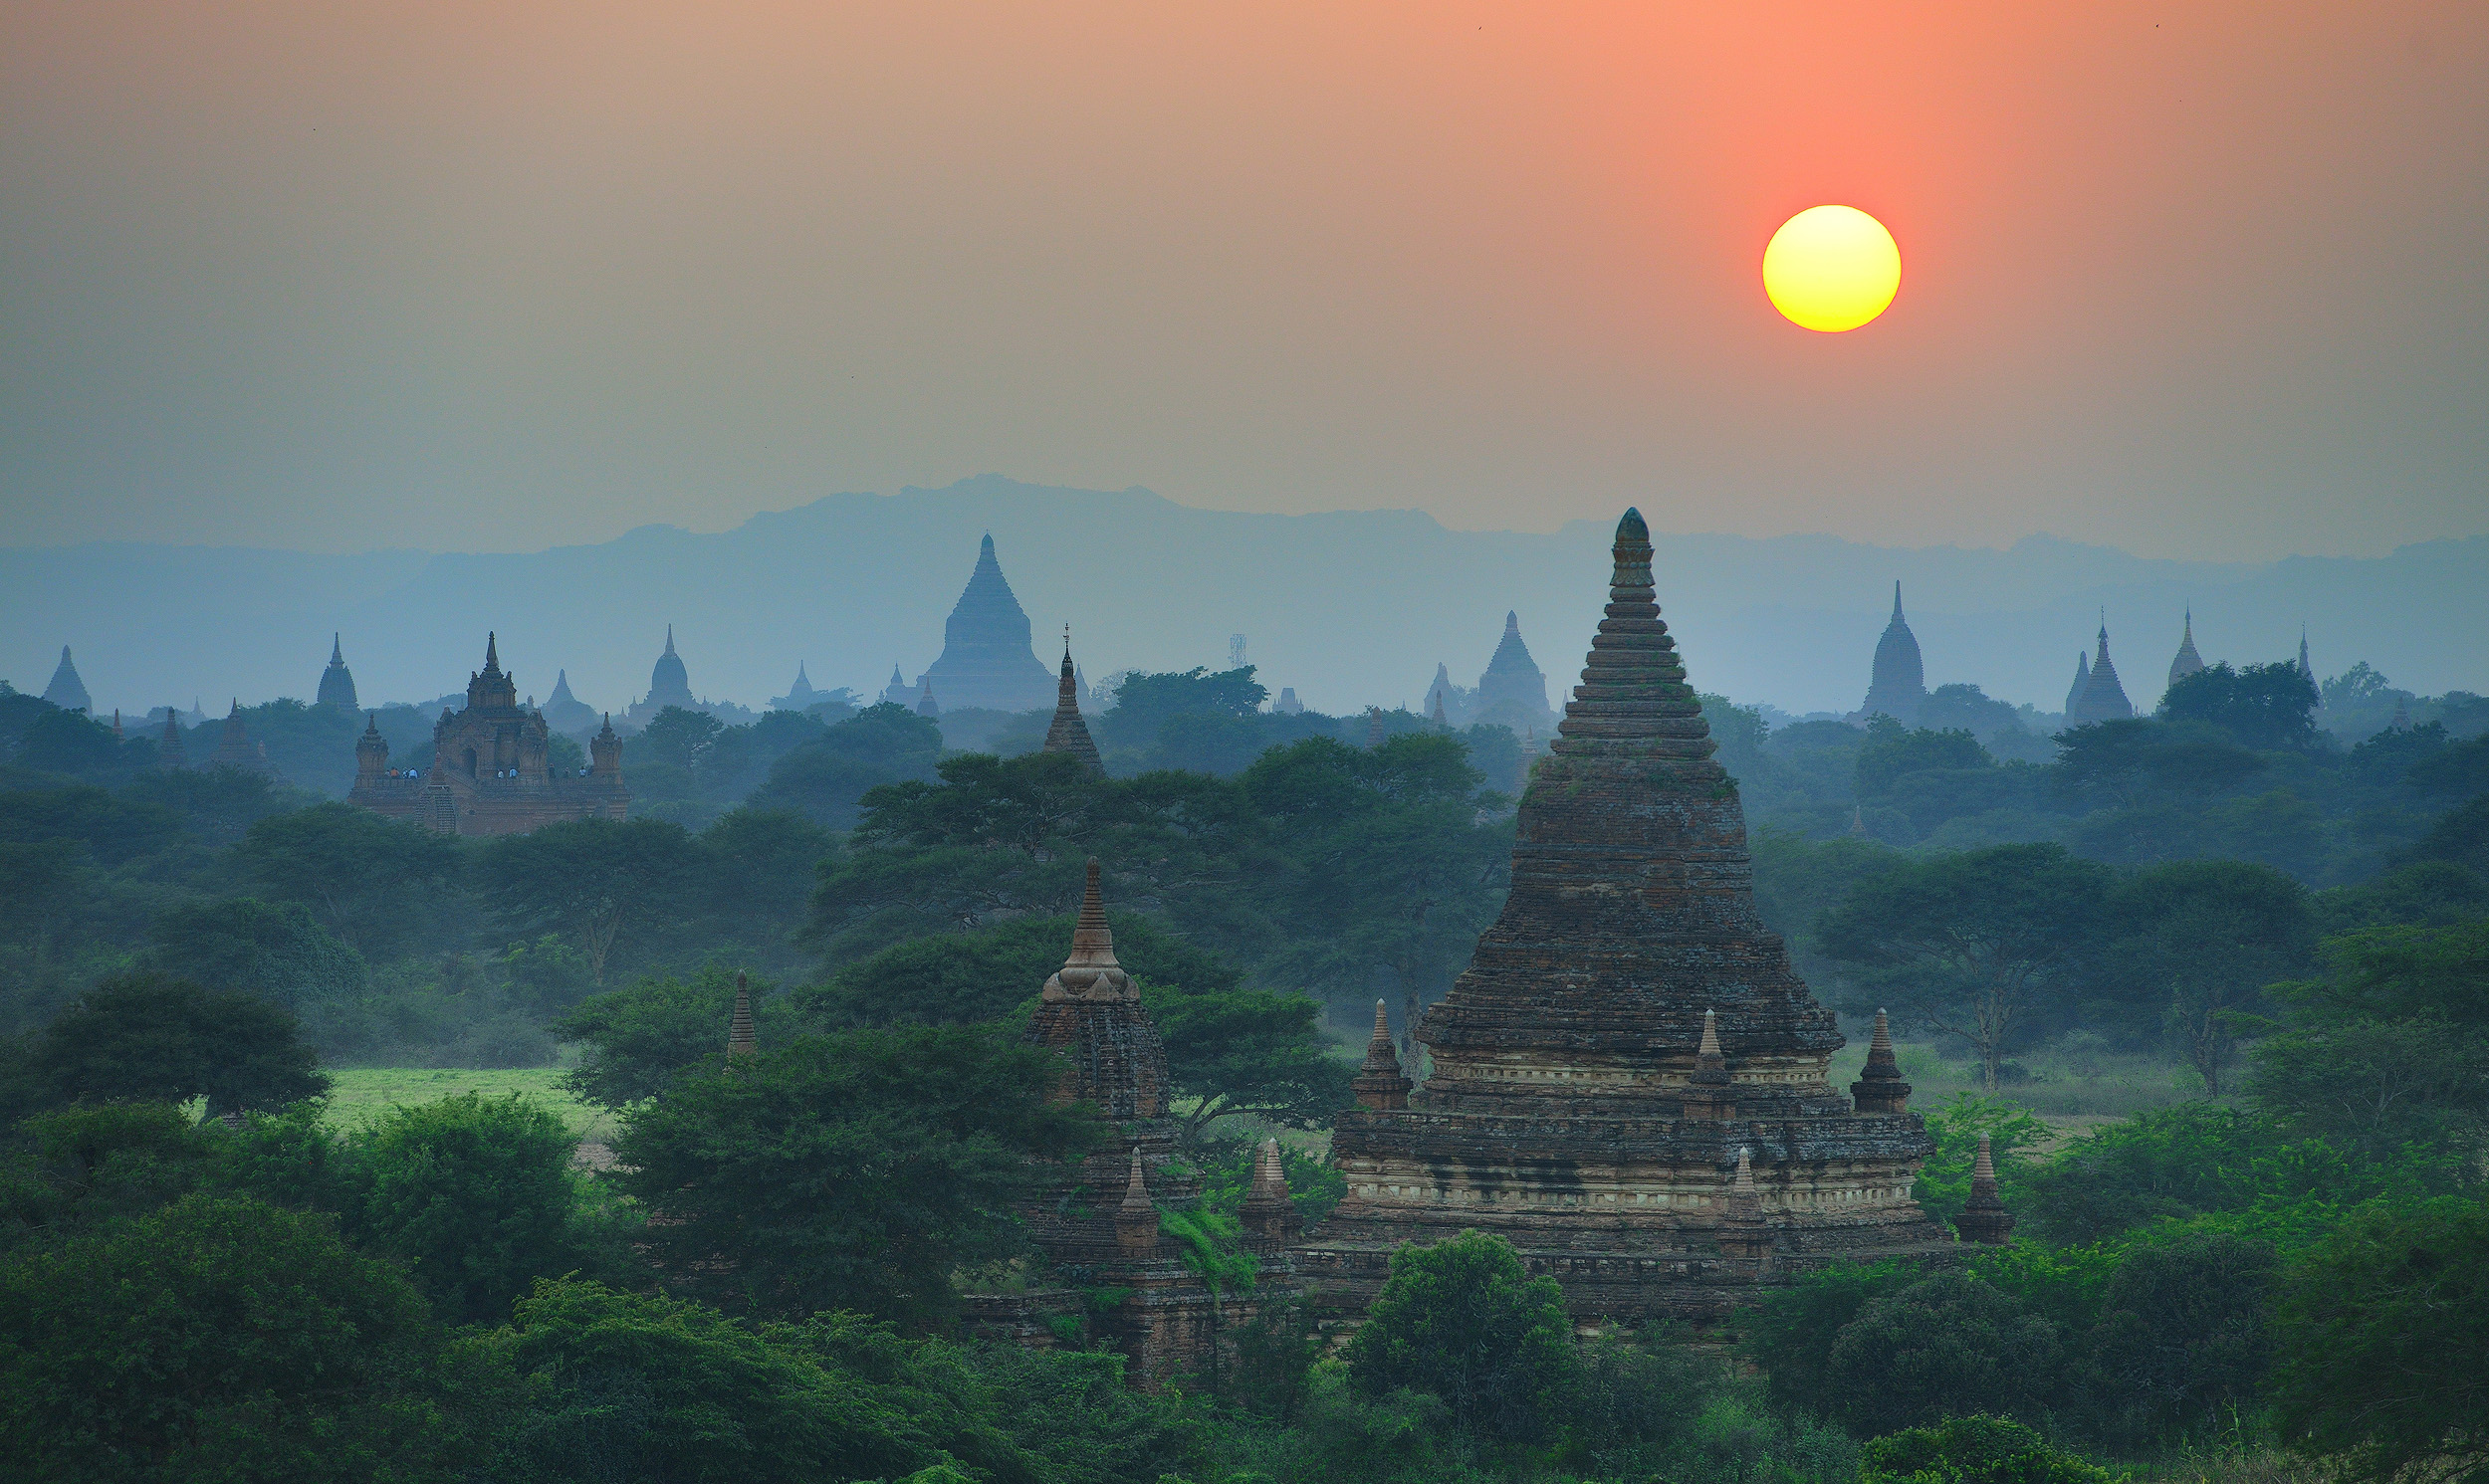 Bagan Sunset   Sunrise is really the best time to photograph Bagan. There's usually a layer of mist on the plain, there are balloons in the sky, and you can find temple tops that are really quiet to set up and shoot from. However, as we were passing this temple on our bicycles as the sun got lower in the sky I decided I may as well have a walk up the steps and watch the sunset….and of course, as soon as I got there I couldn't resist taking a couple of frames. So this is the view from the top of Buledi temple as the sun sets in the west